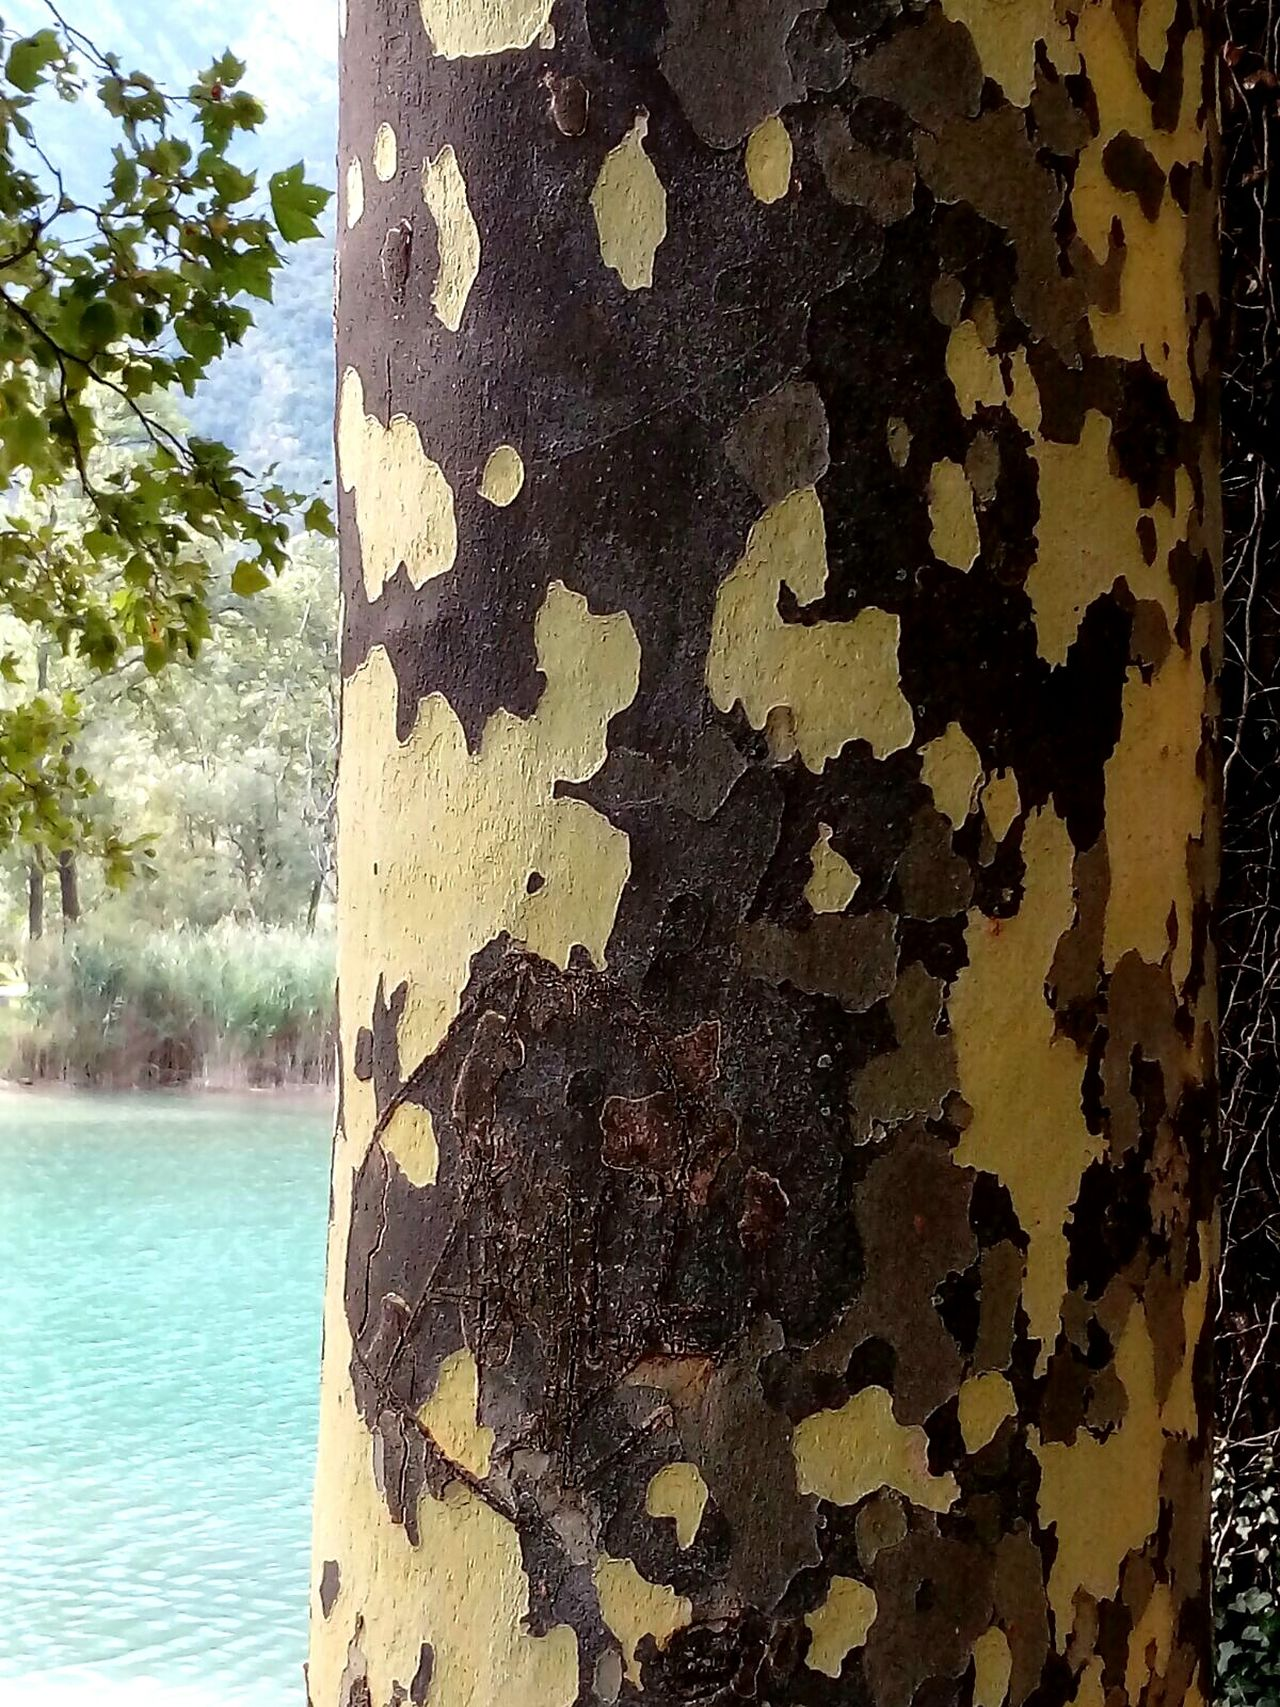 Textures And Surfaces At The Lake Tree_captures Mimetism Mimetic Mimetico Tree Trunk Emerald Lake Wood Textures Trees And Nature Maximum Closeness